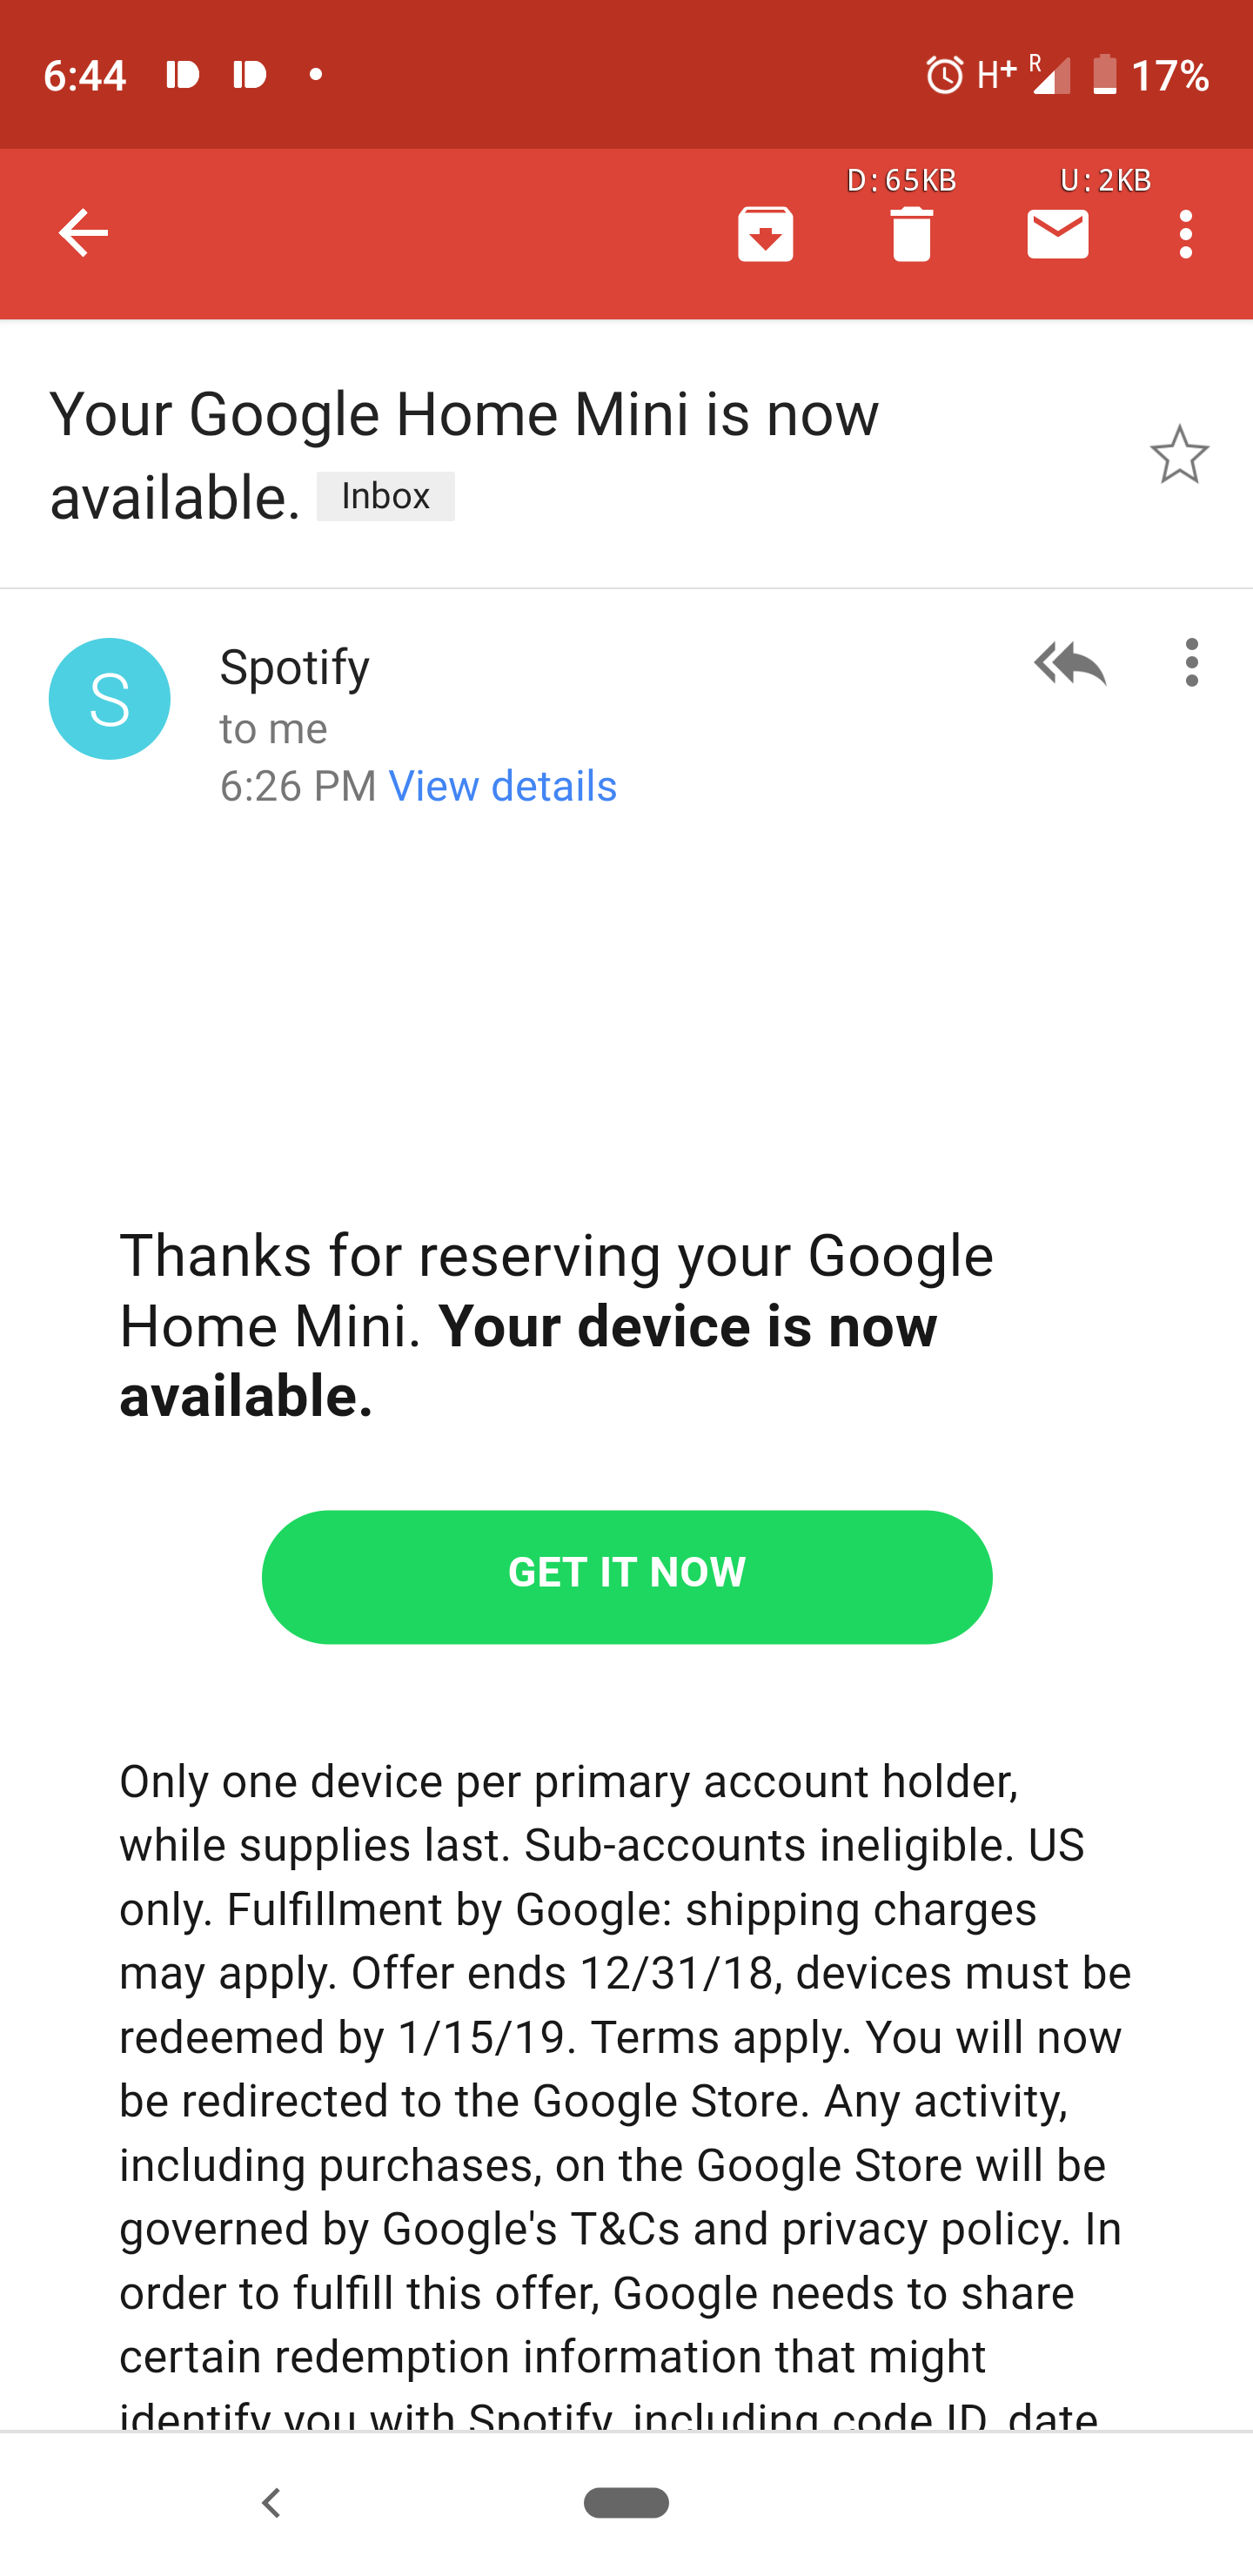 Update: Offer comes to UK] Spotify Premium for Family account